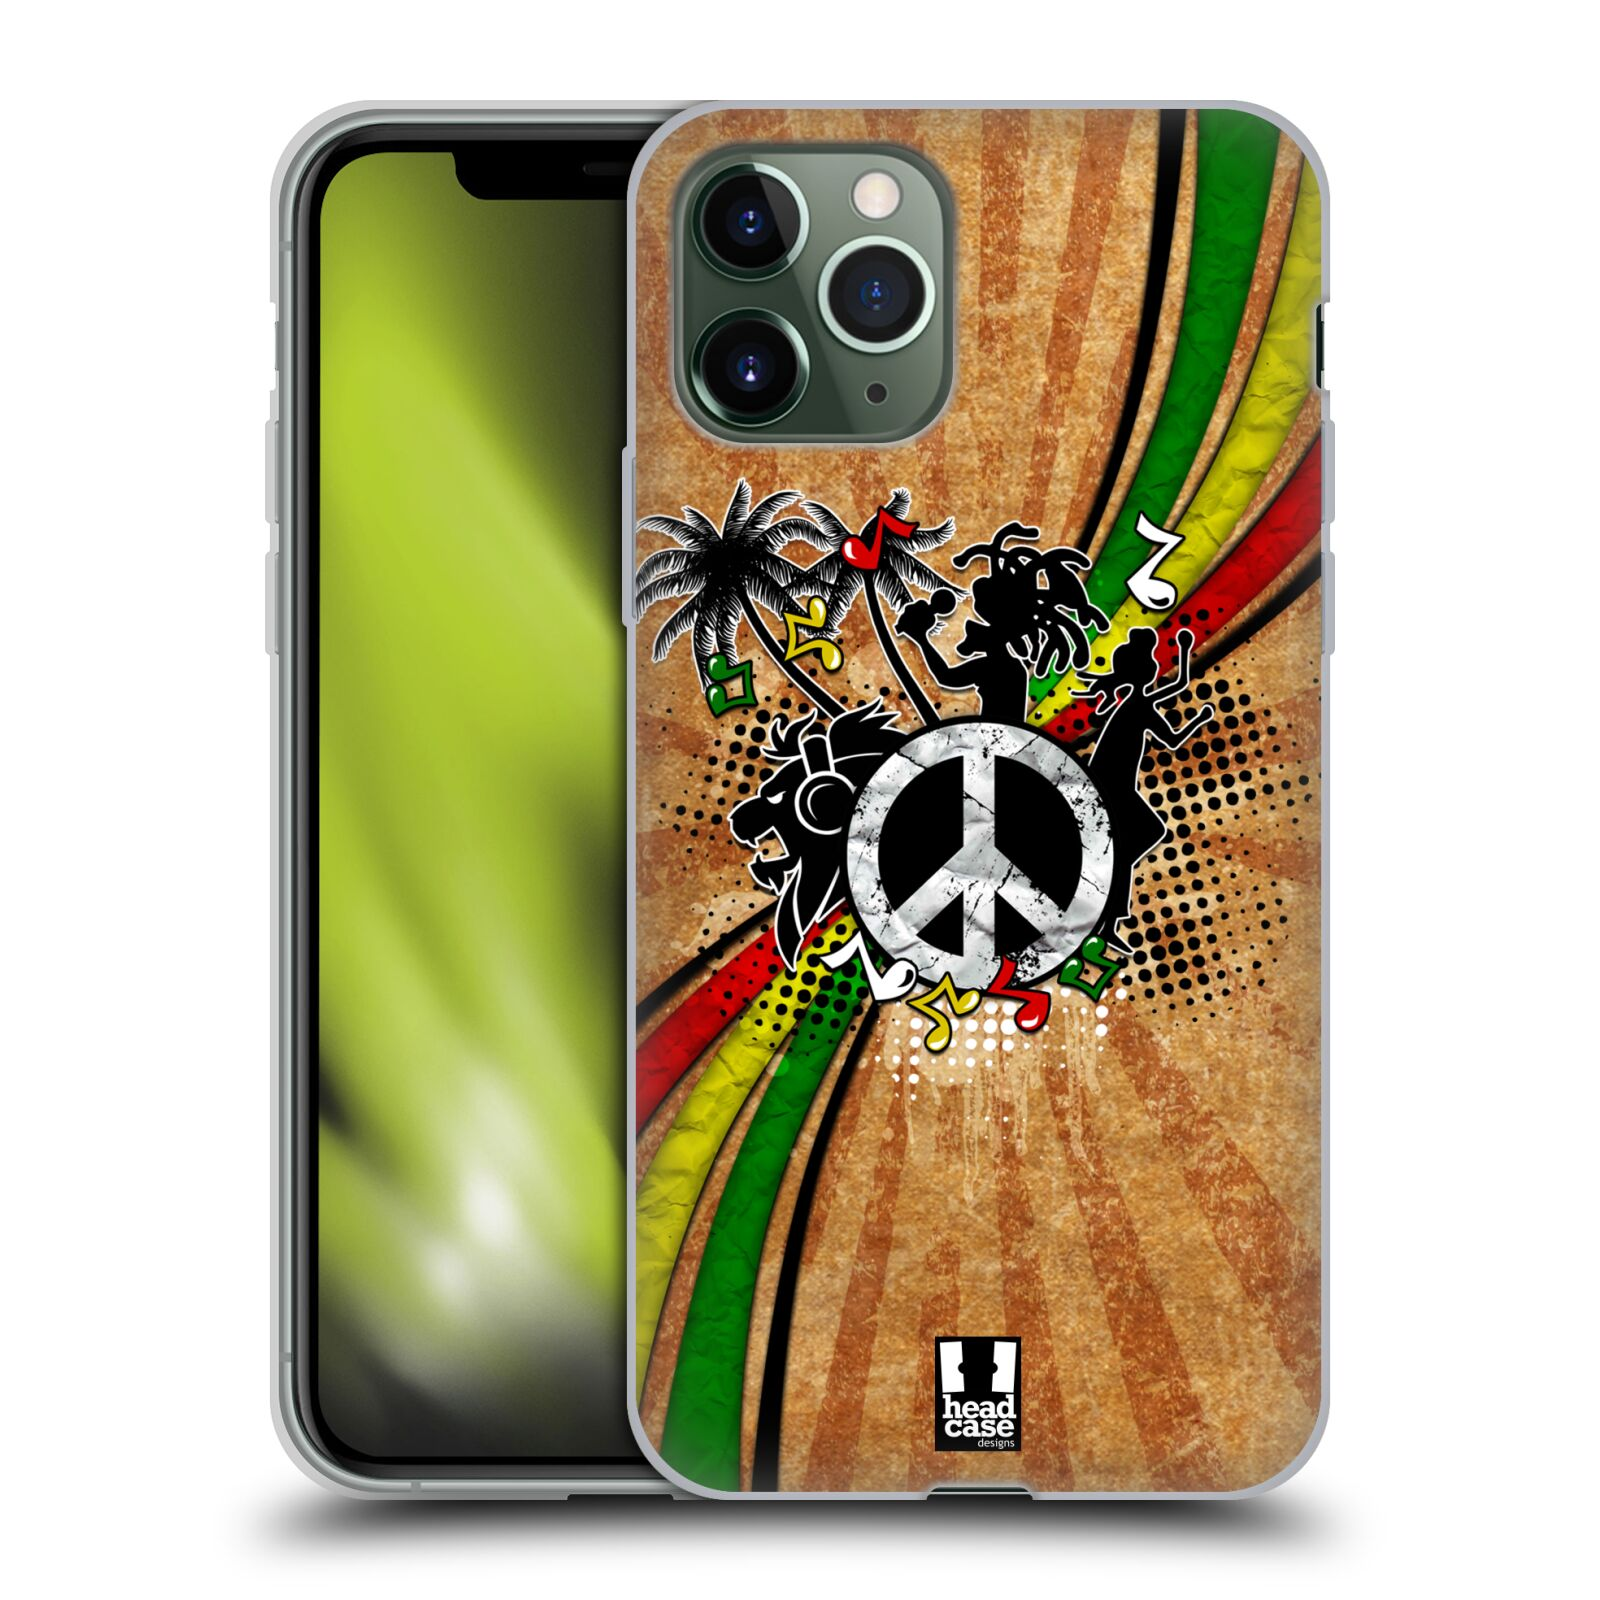 louisvuitton krytu na iphone x | Silikonové pouzdro na mobil Apple iPhone 11 Pro - Head Case - REGGAE